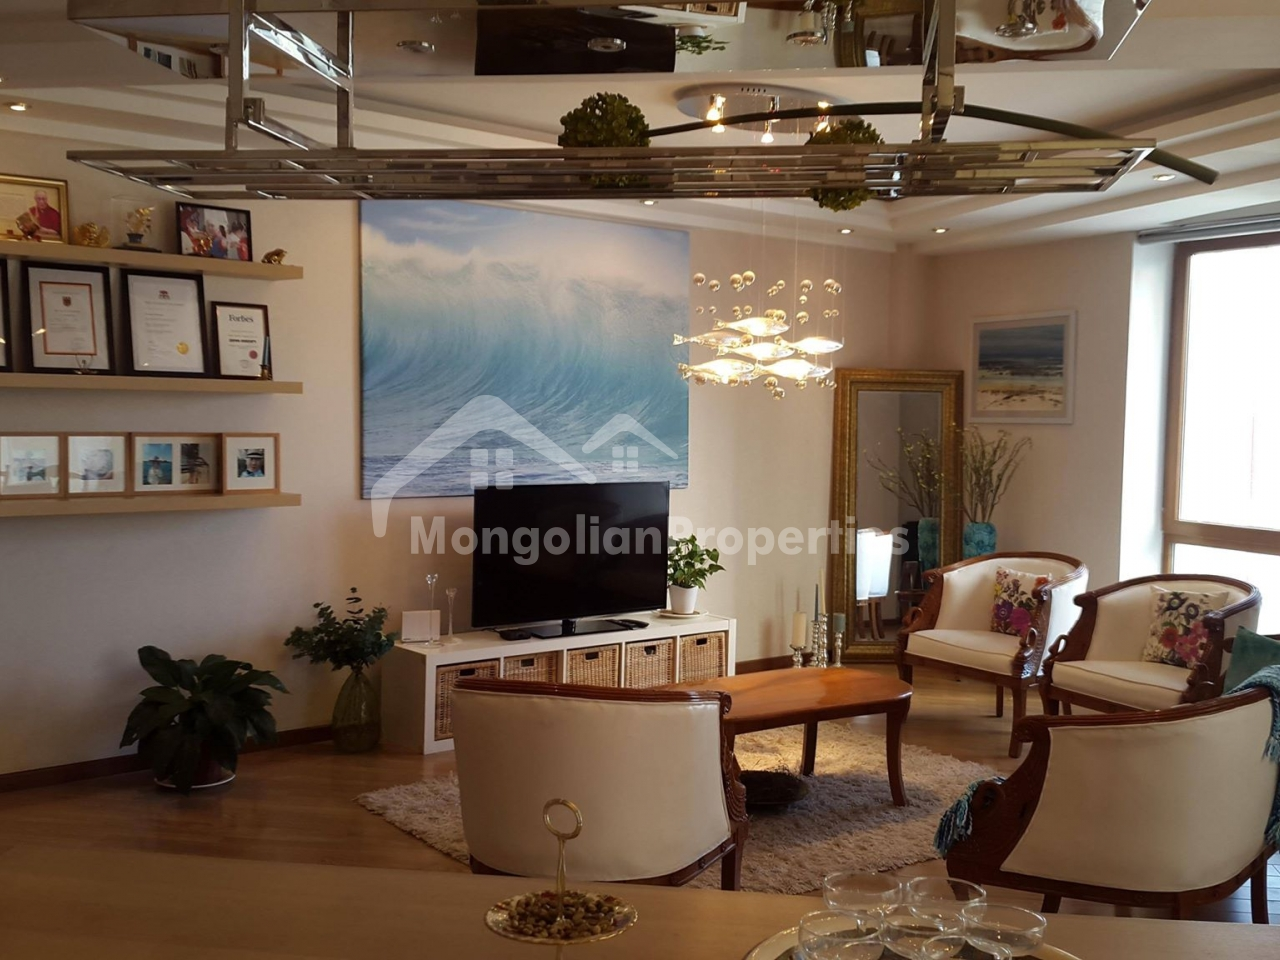 Beautiful 2 bedroom apartment is for rent next to the Main Square and Shangrila